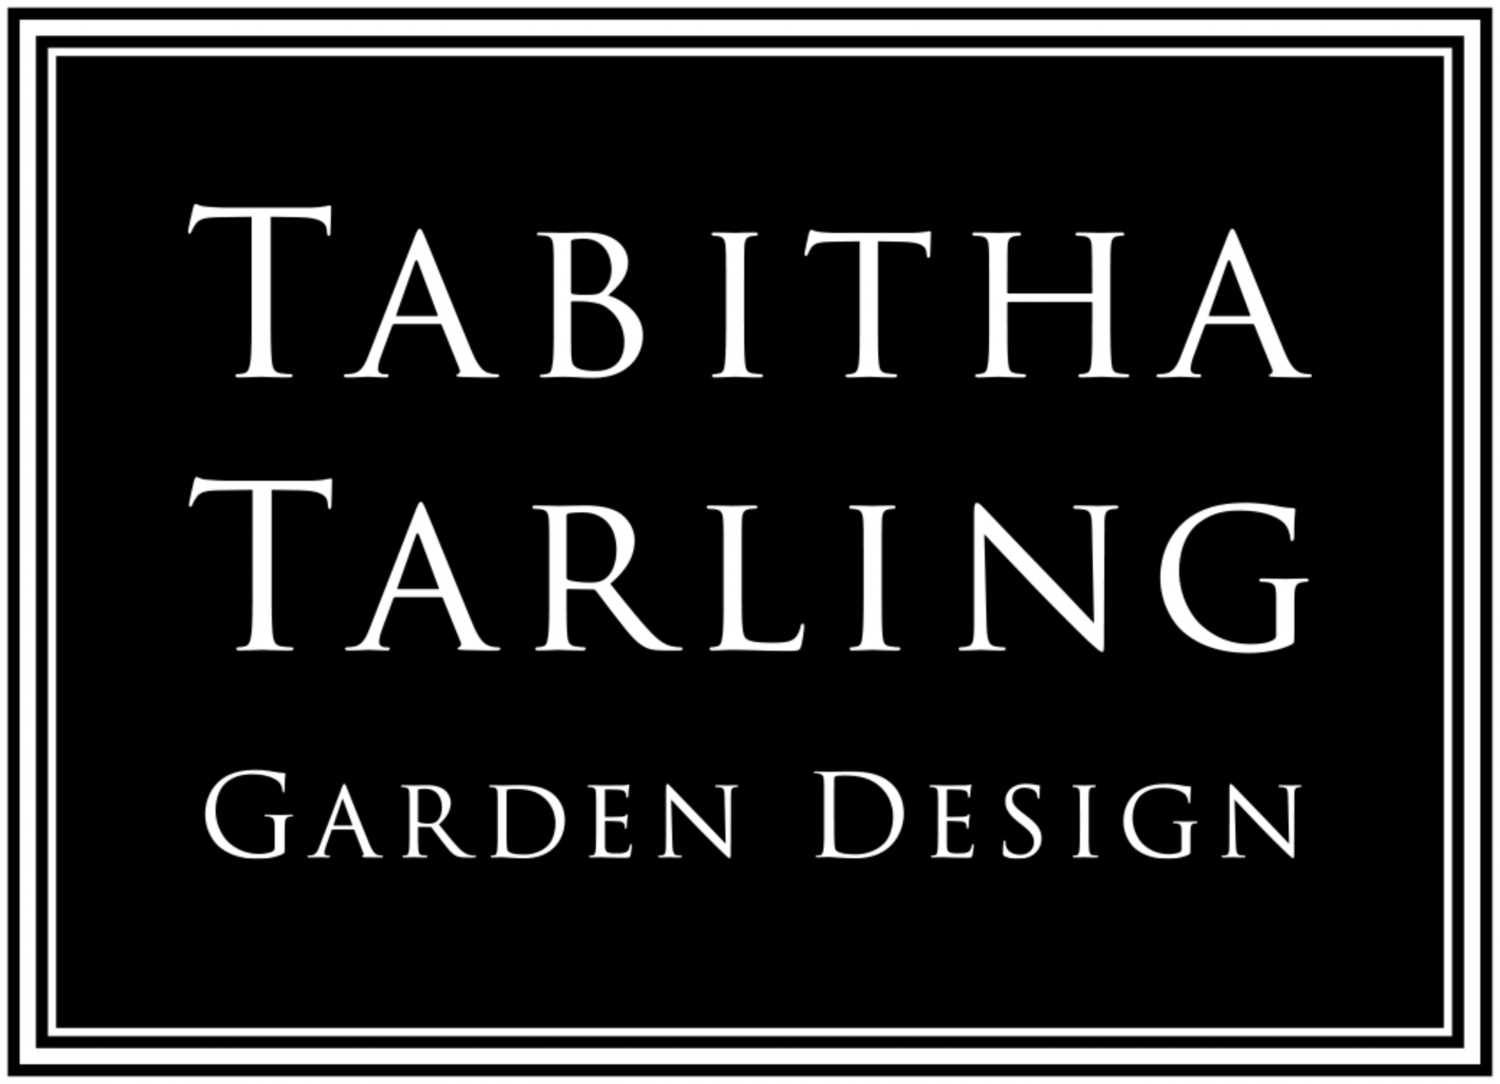 Tabitha Tarling Garden Design